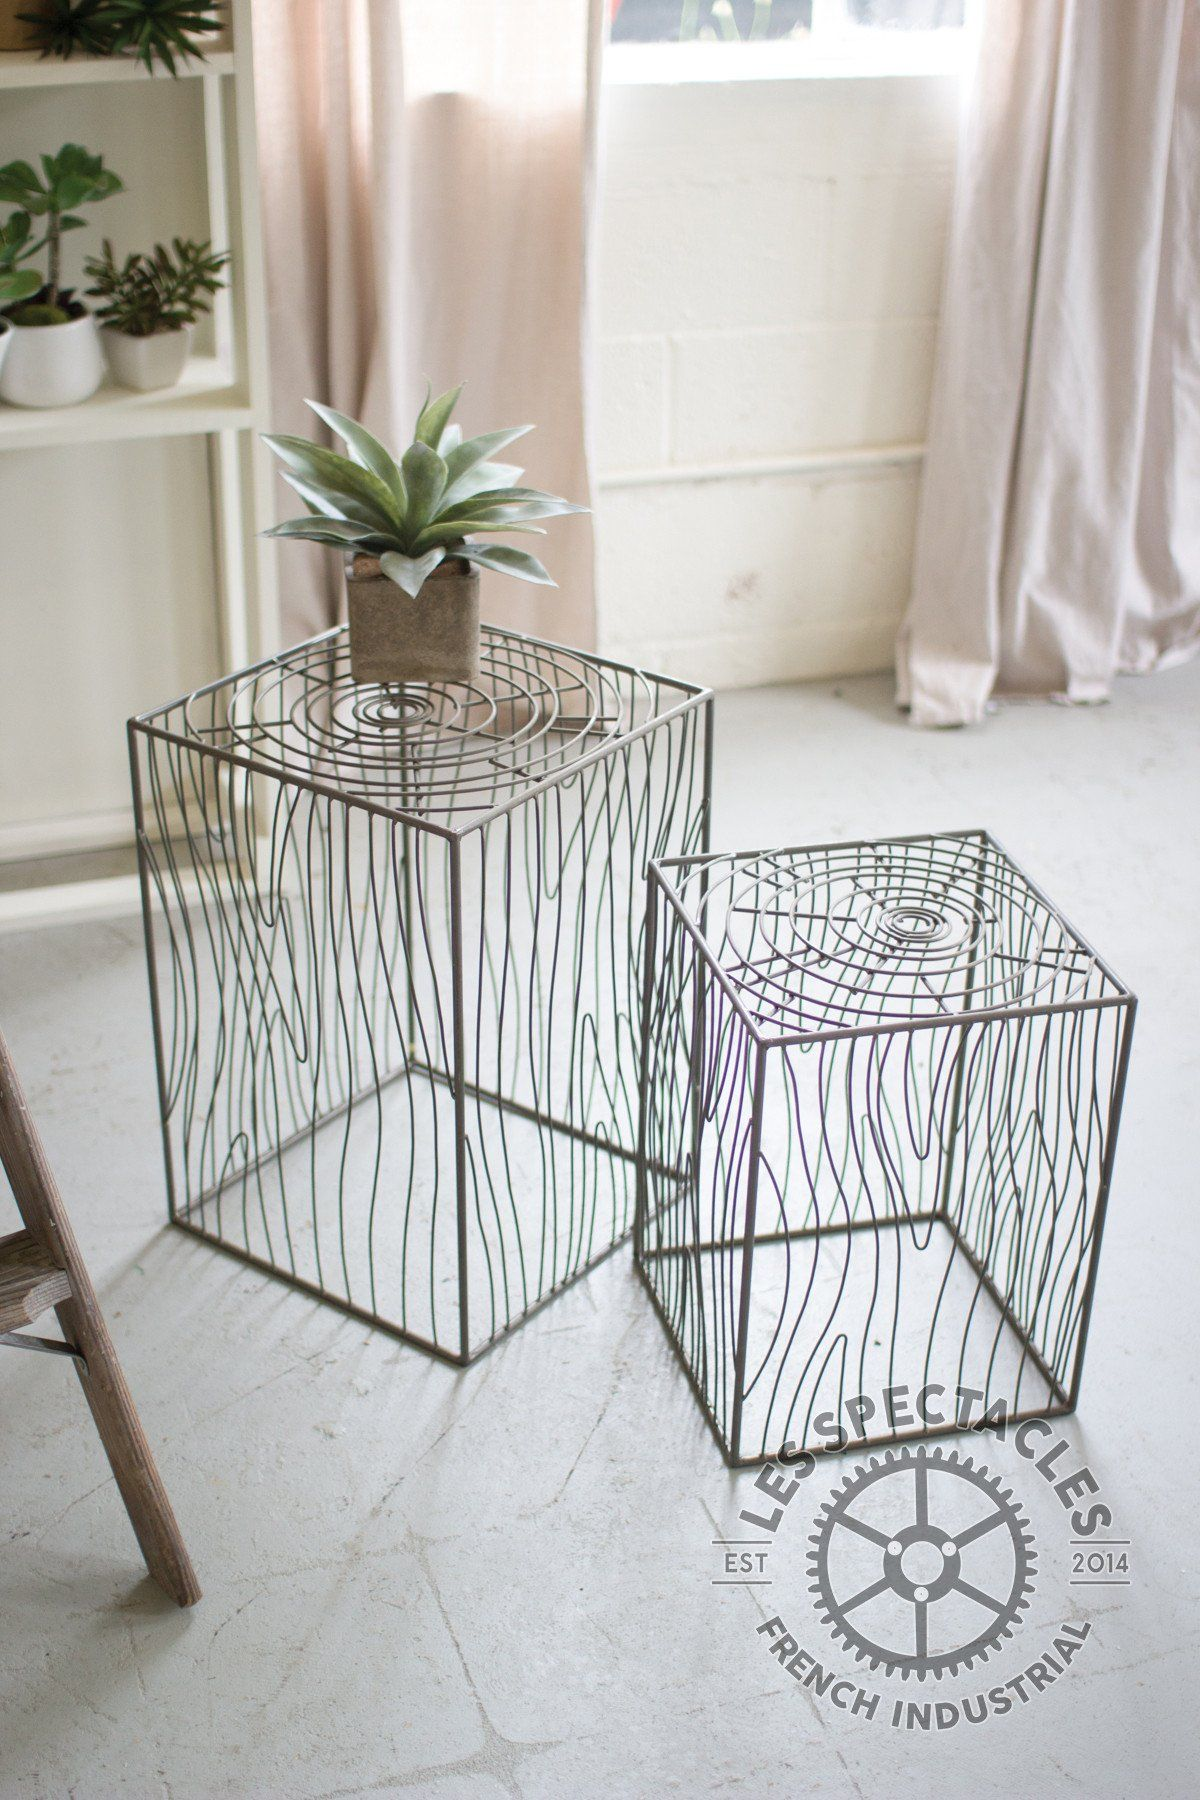 woodgrain wire tables products table basket accent outdoor porch plastic patio furniture seating mid century modern dining room mirrored cabinet bedside ikea metal farm chairs